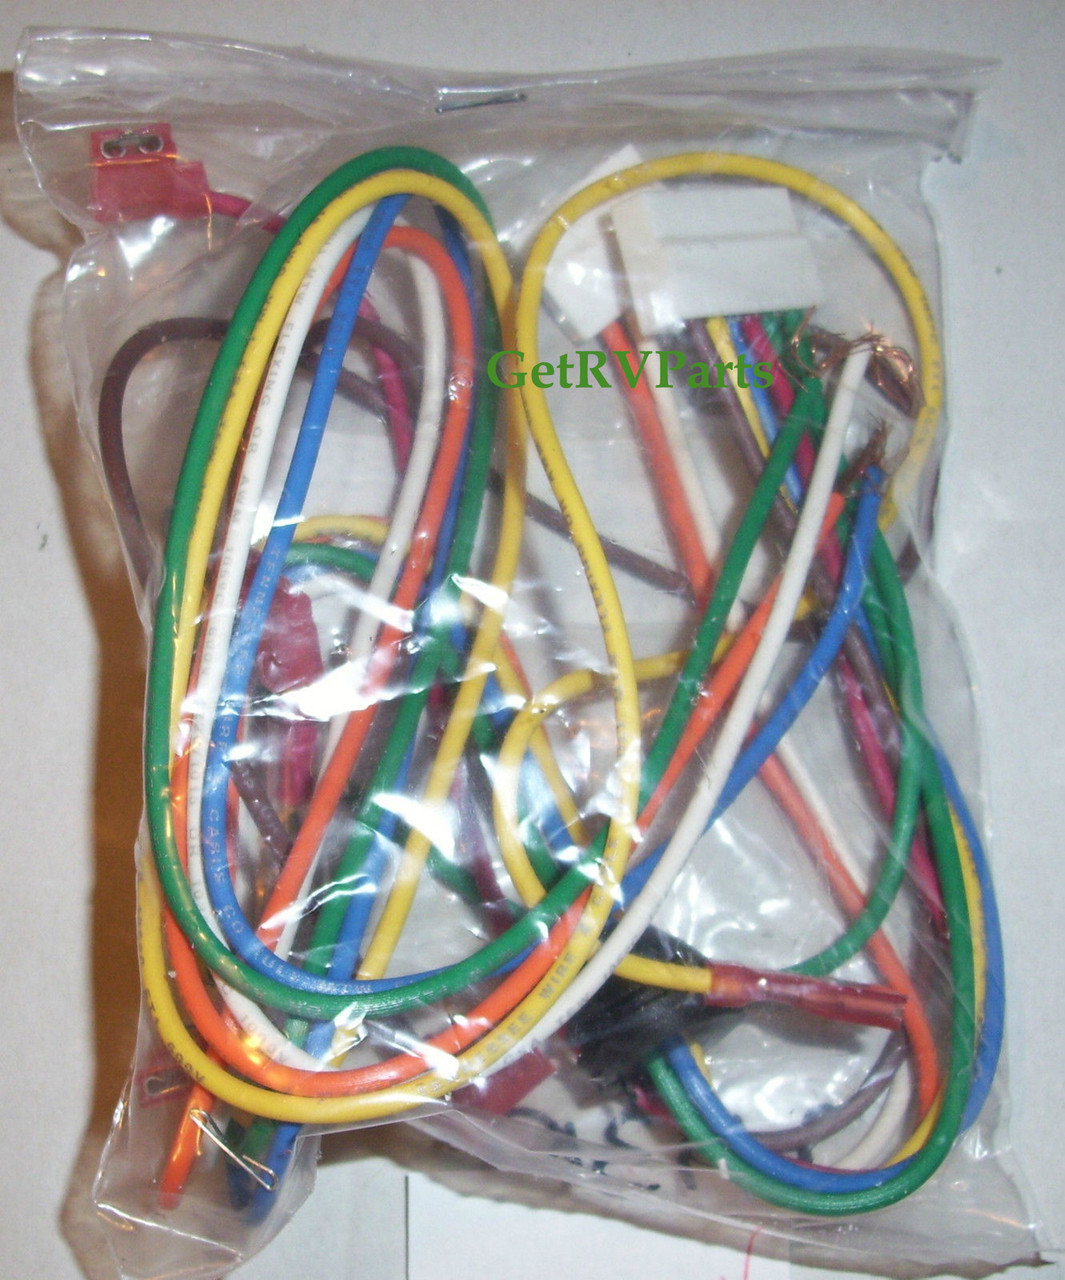 hight resolution of atwood water 93315 heater wire harness was 93191 image 1 loading zoom